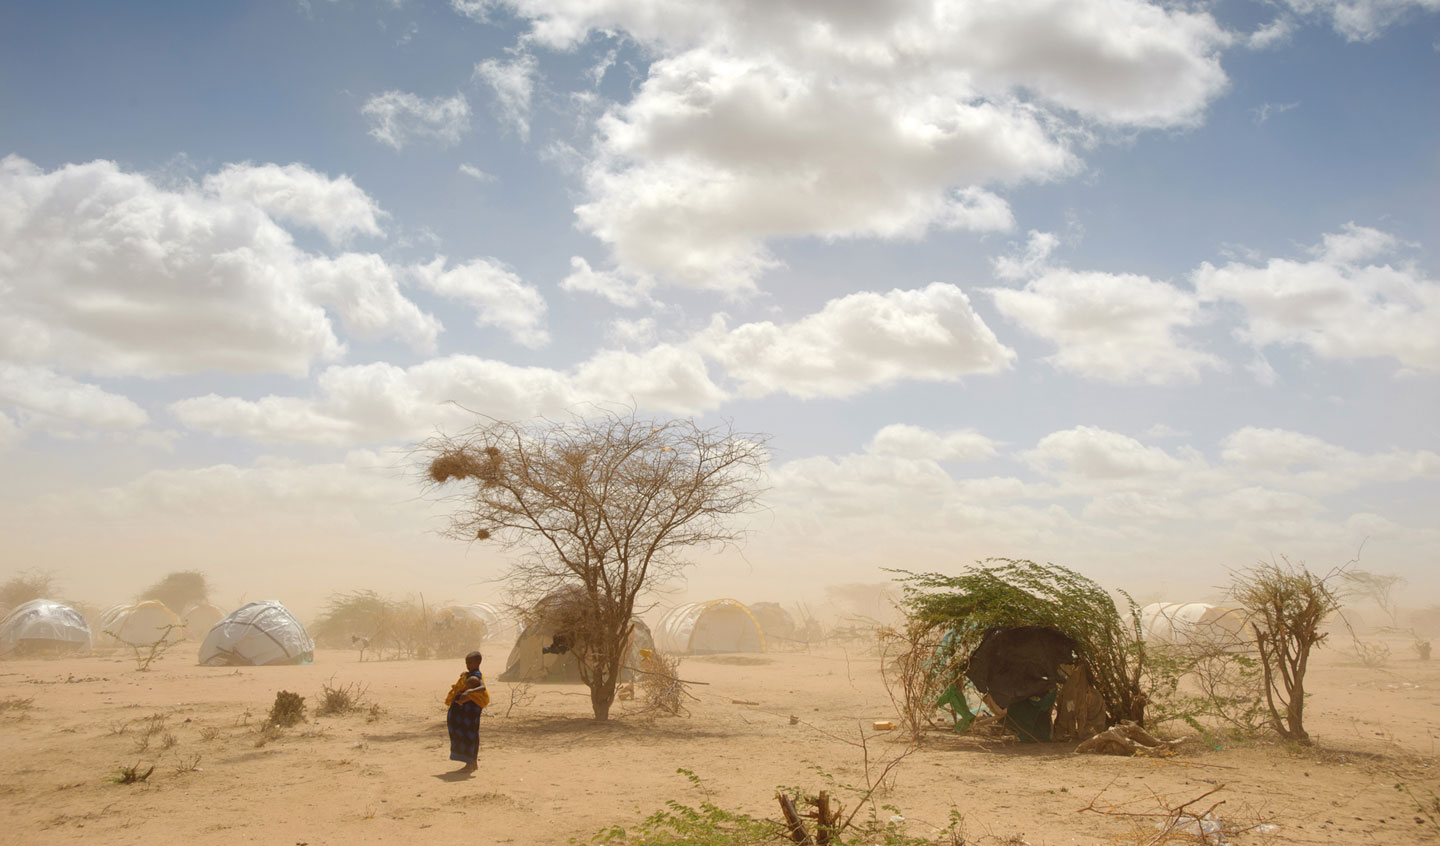 In Dabaad, a dusty refugee camp in Kenya, an African woman stands surrounded by makeshift shelters.